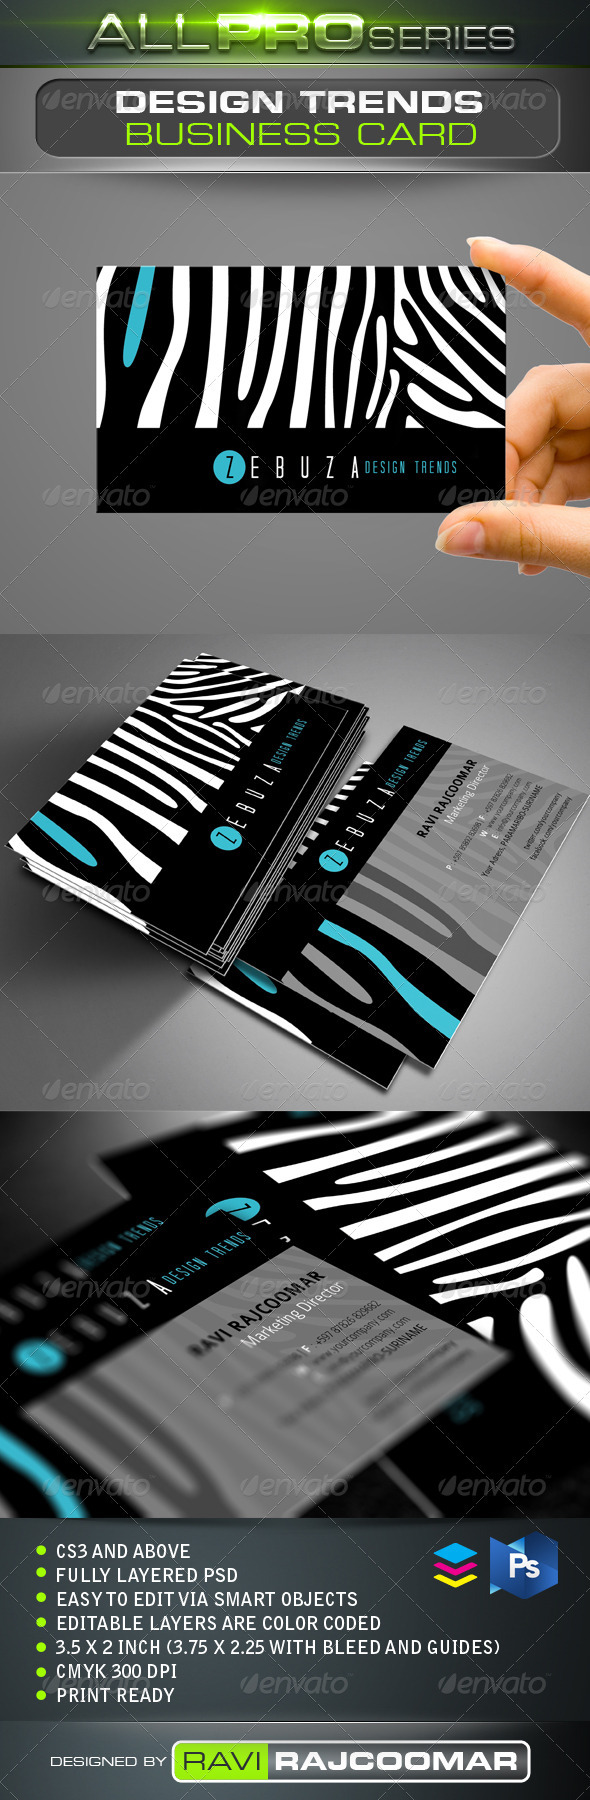 Design Trends Business Card - Creative Business Cards